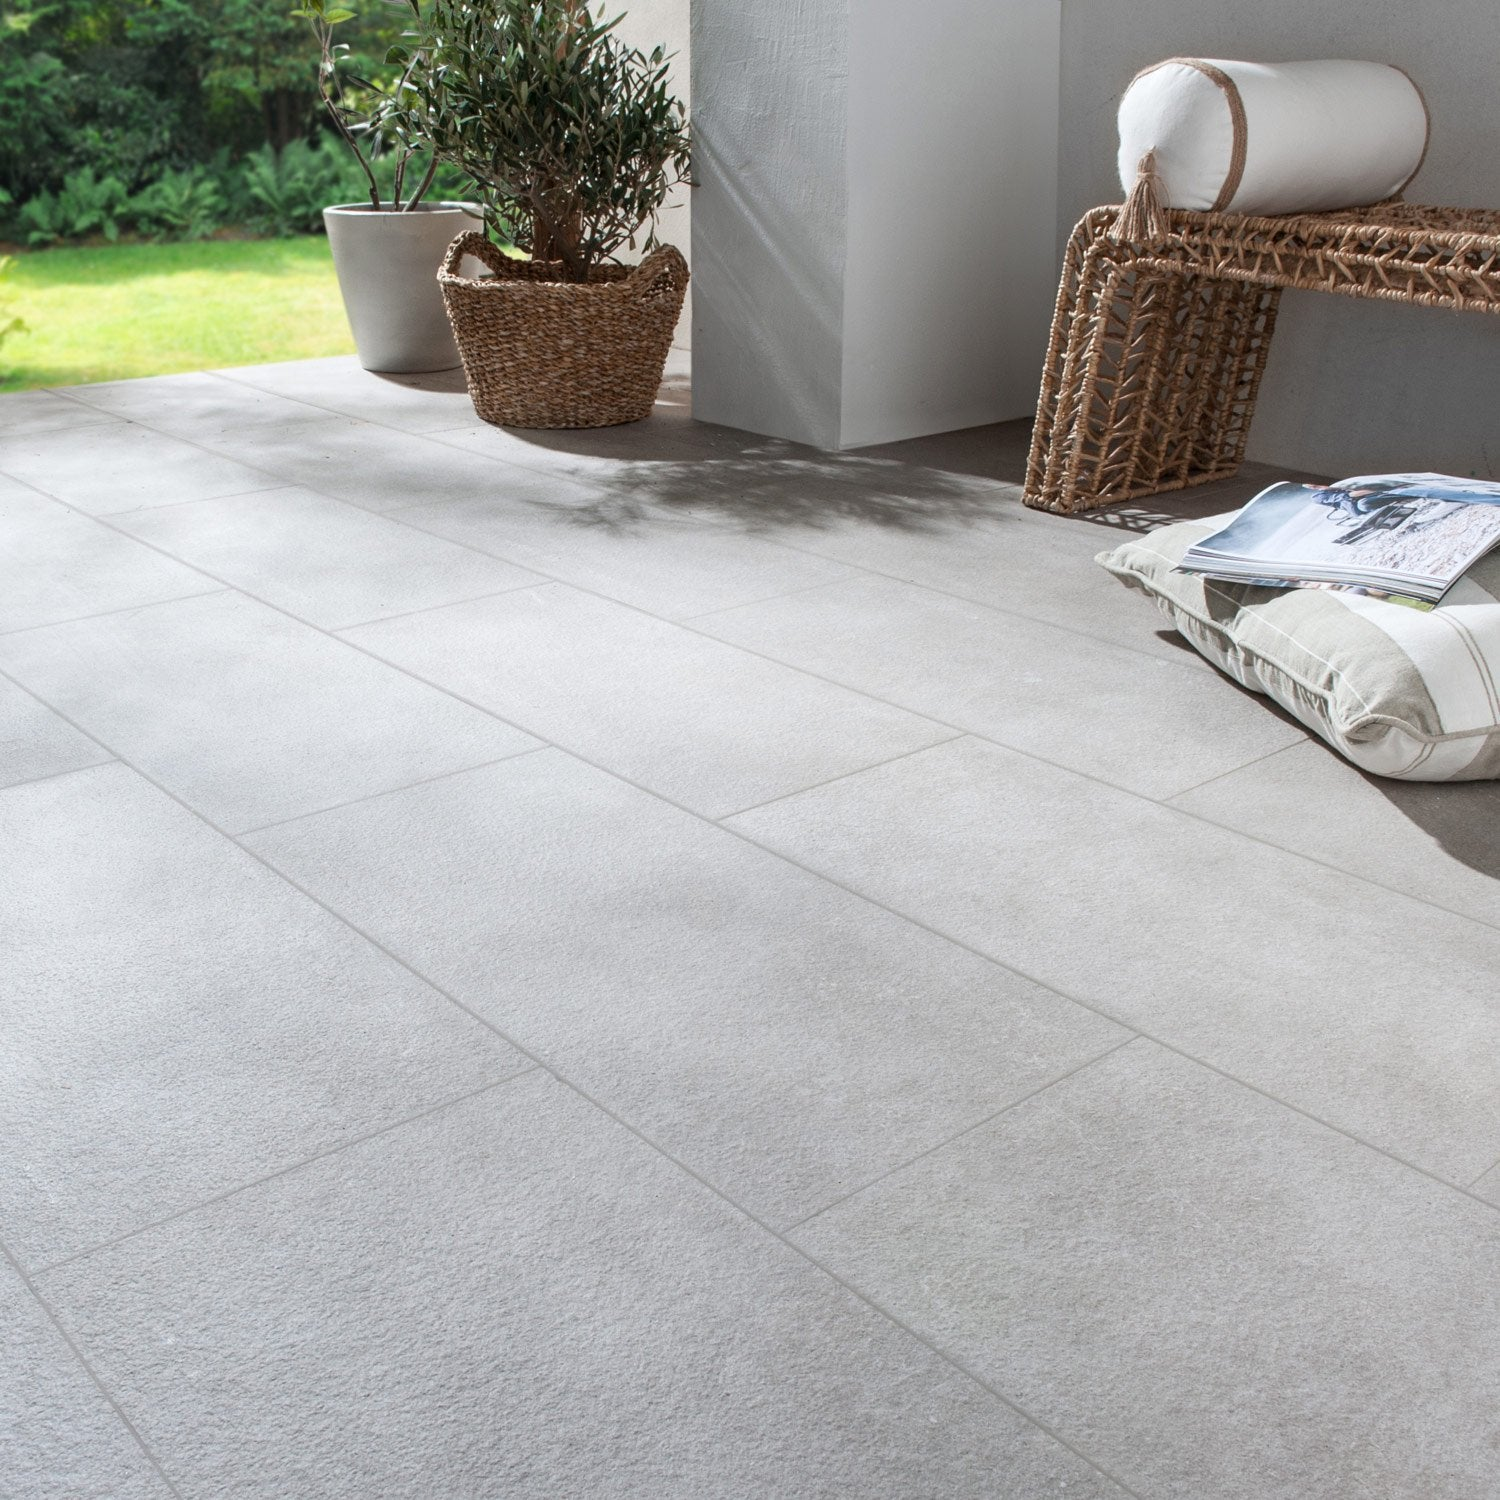 Carrelage sol sable effet pierre ypres x cm for Carrelage ypres